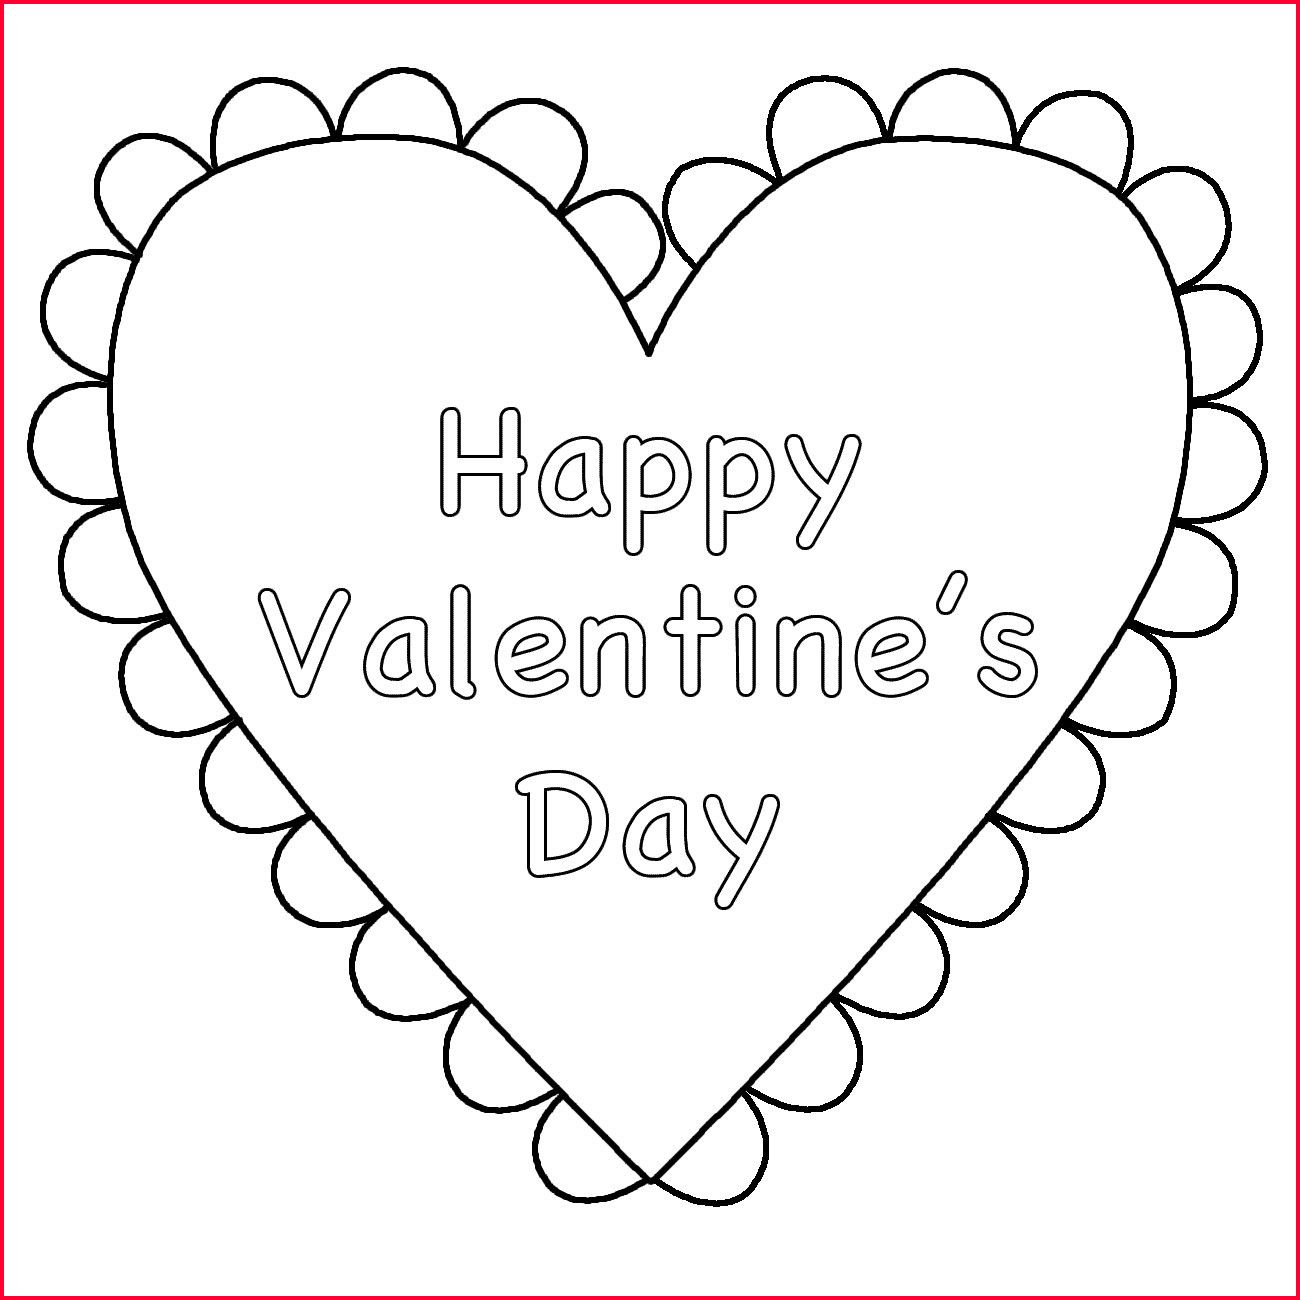 Heart Coloring Pages Printable In 2020 Valentine Coloring Pages Valentines Day Coloring Page Heart Coloring Pages